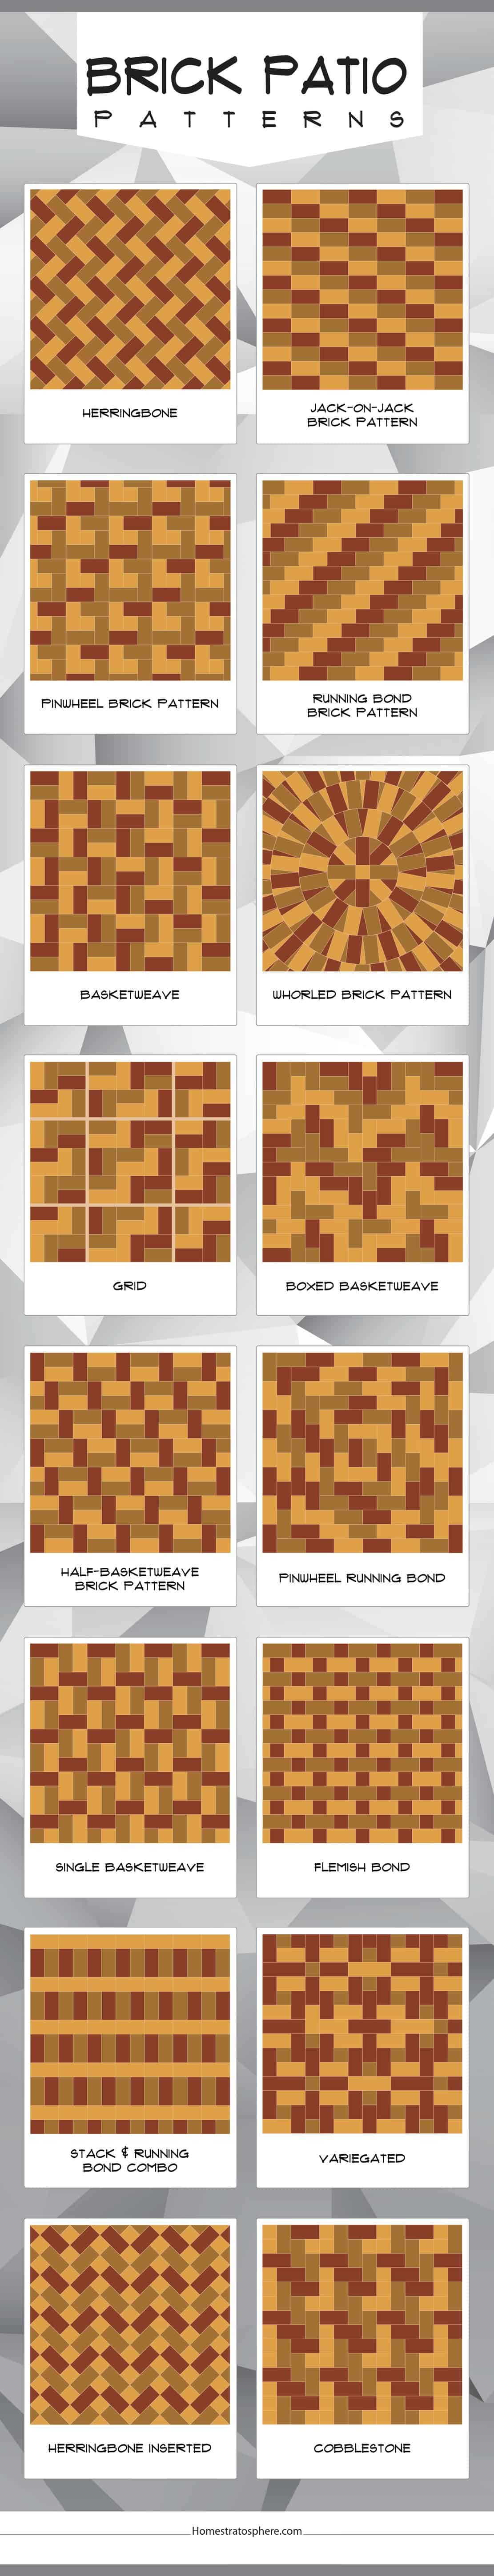 Brick patio patterns infographic